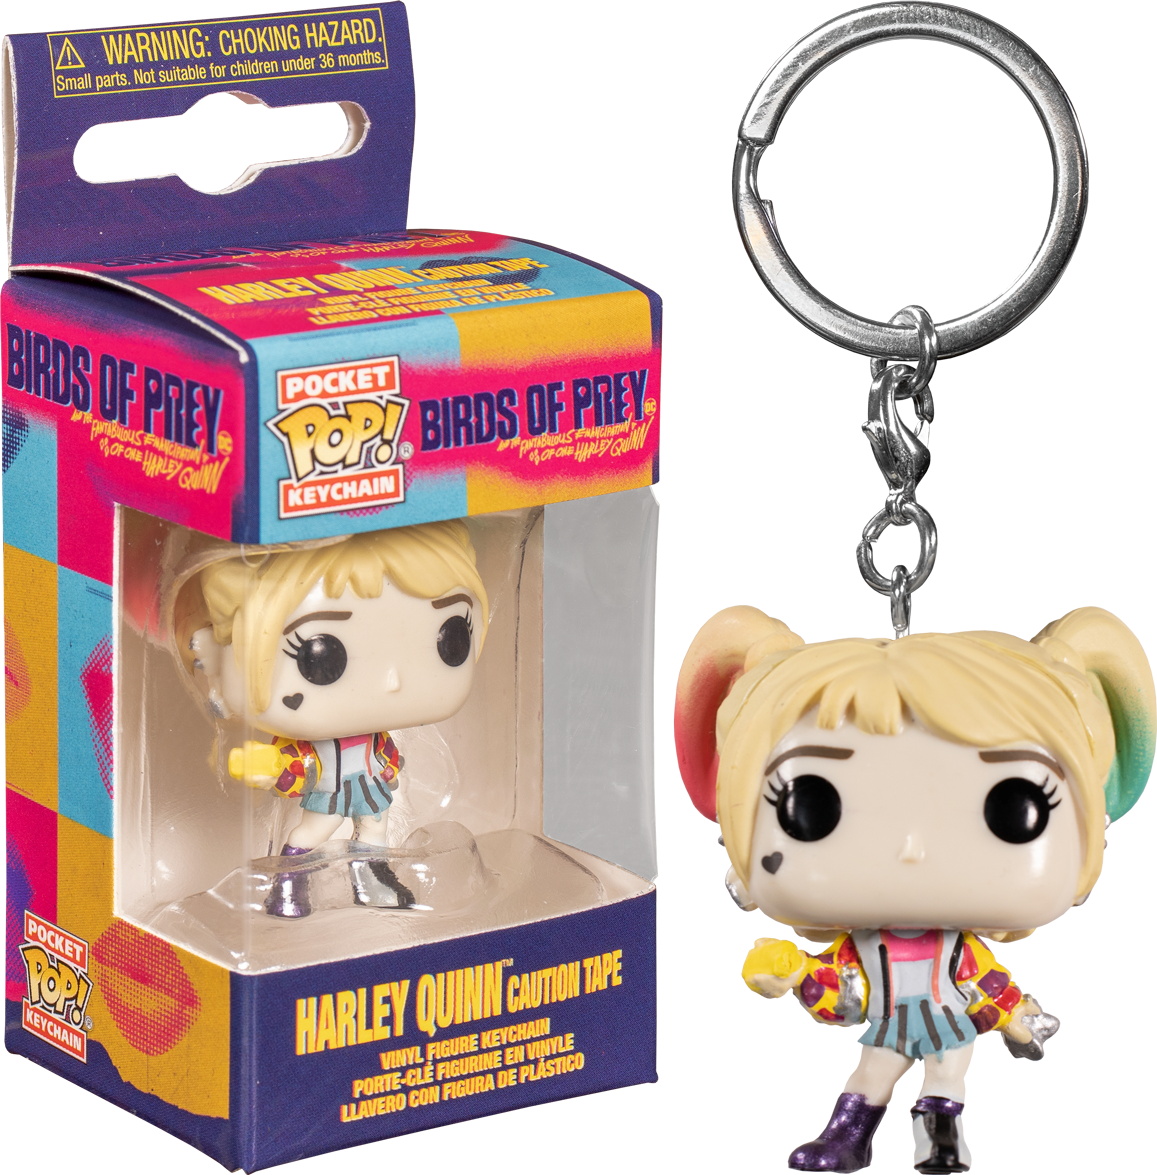 Funko Pocket Pop Keychain Birds Of Prey 2020 Harley Quinn With Caution Tape The Amazing Collectables